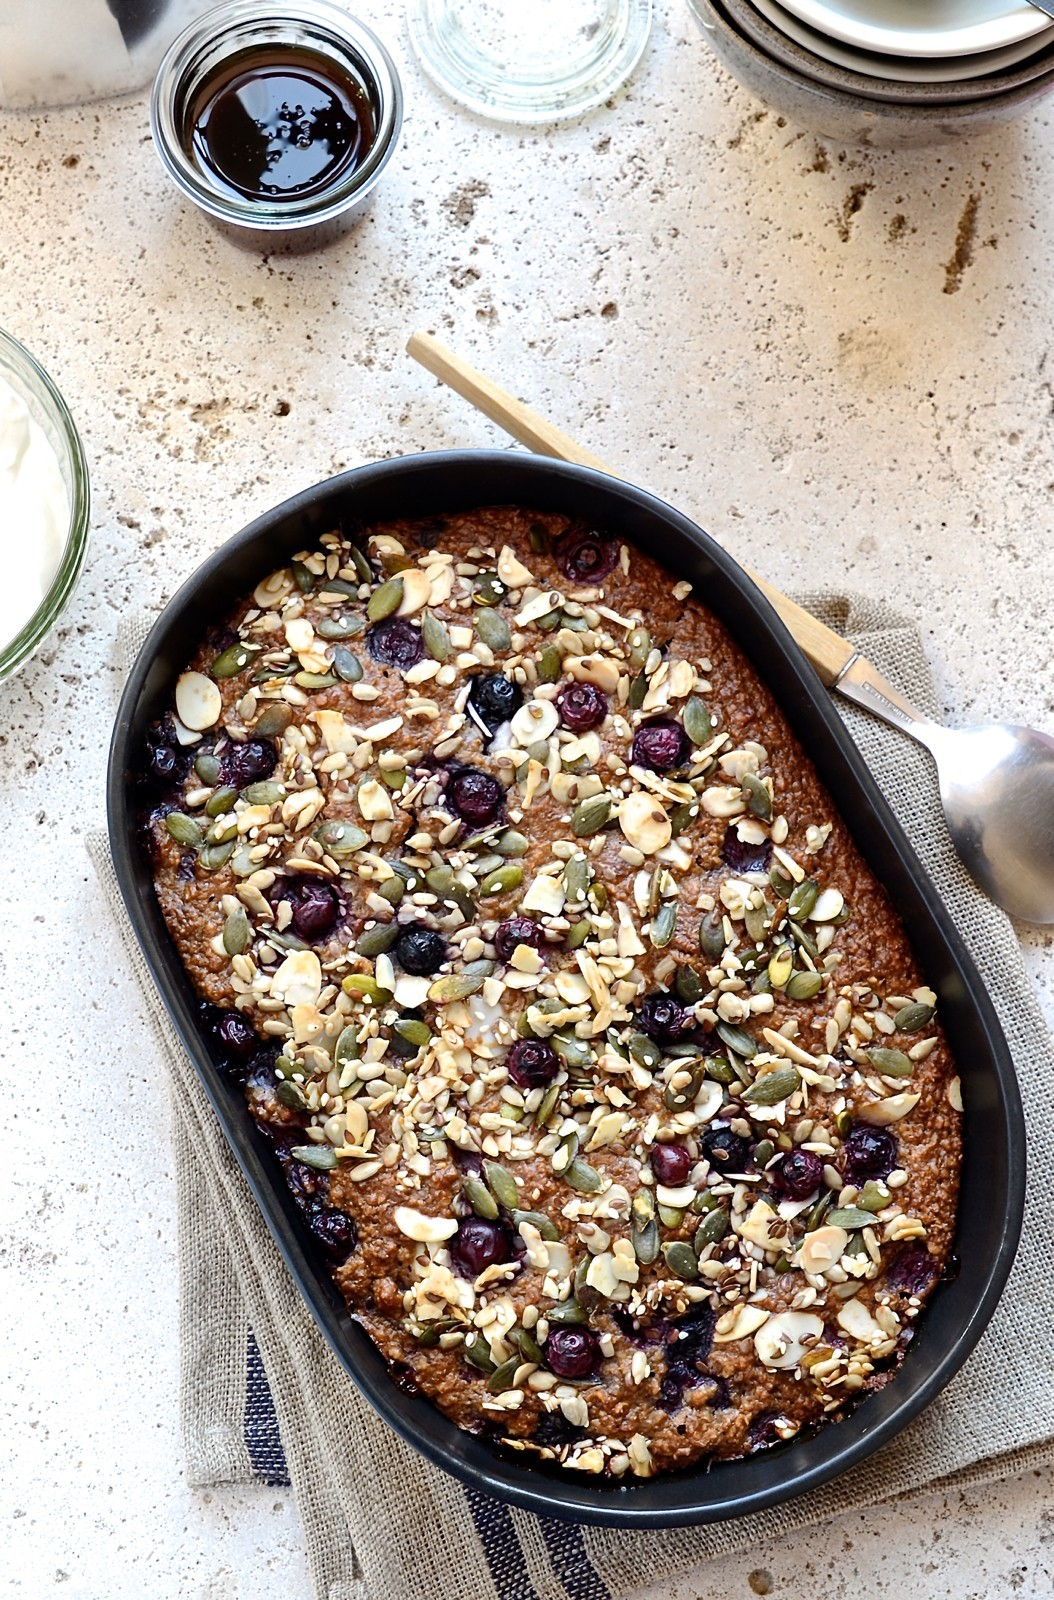 Baked blueberry oatmeal with seeded crumble | Bibbyskitchen recipes